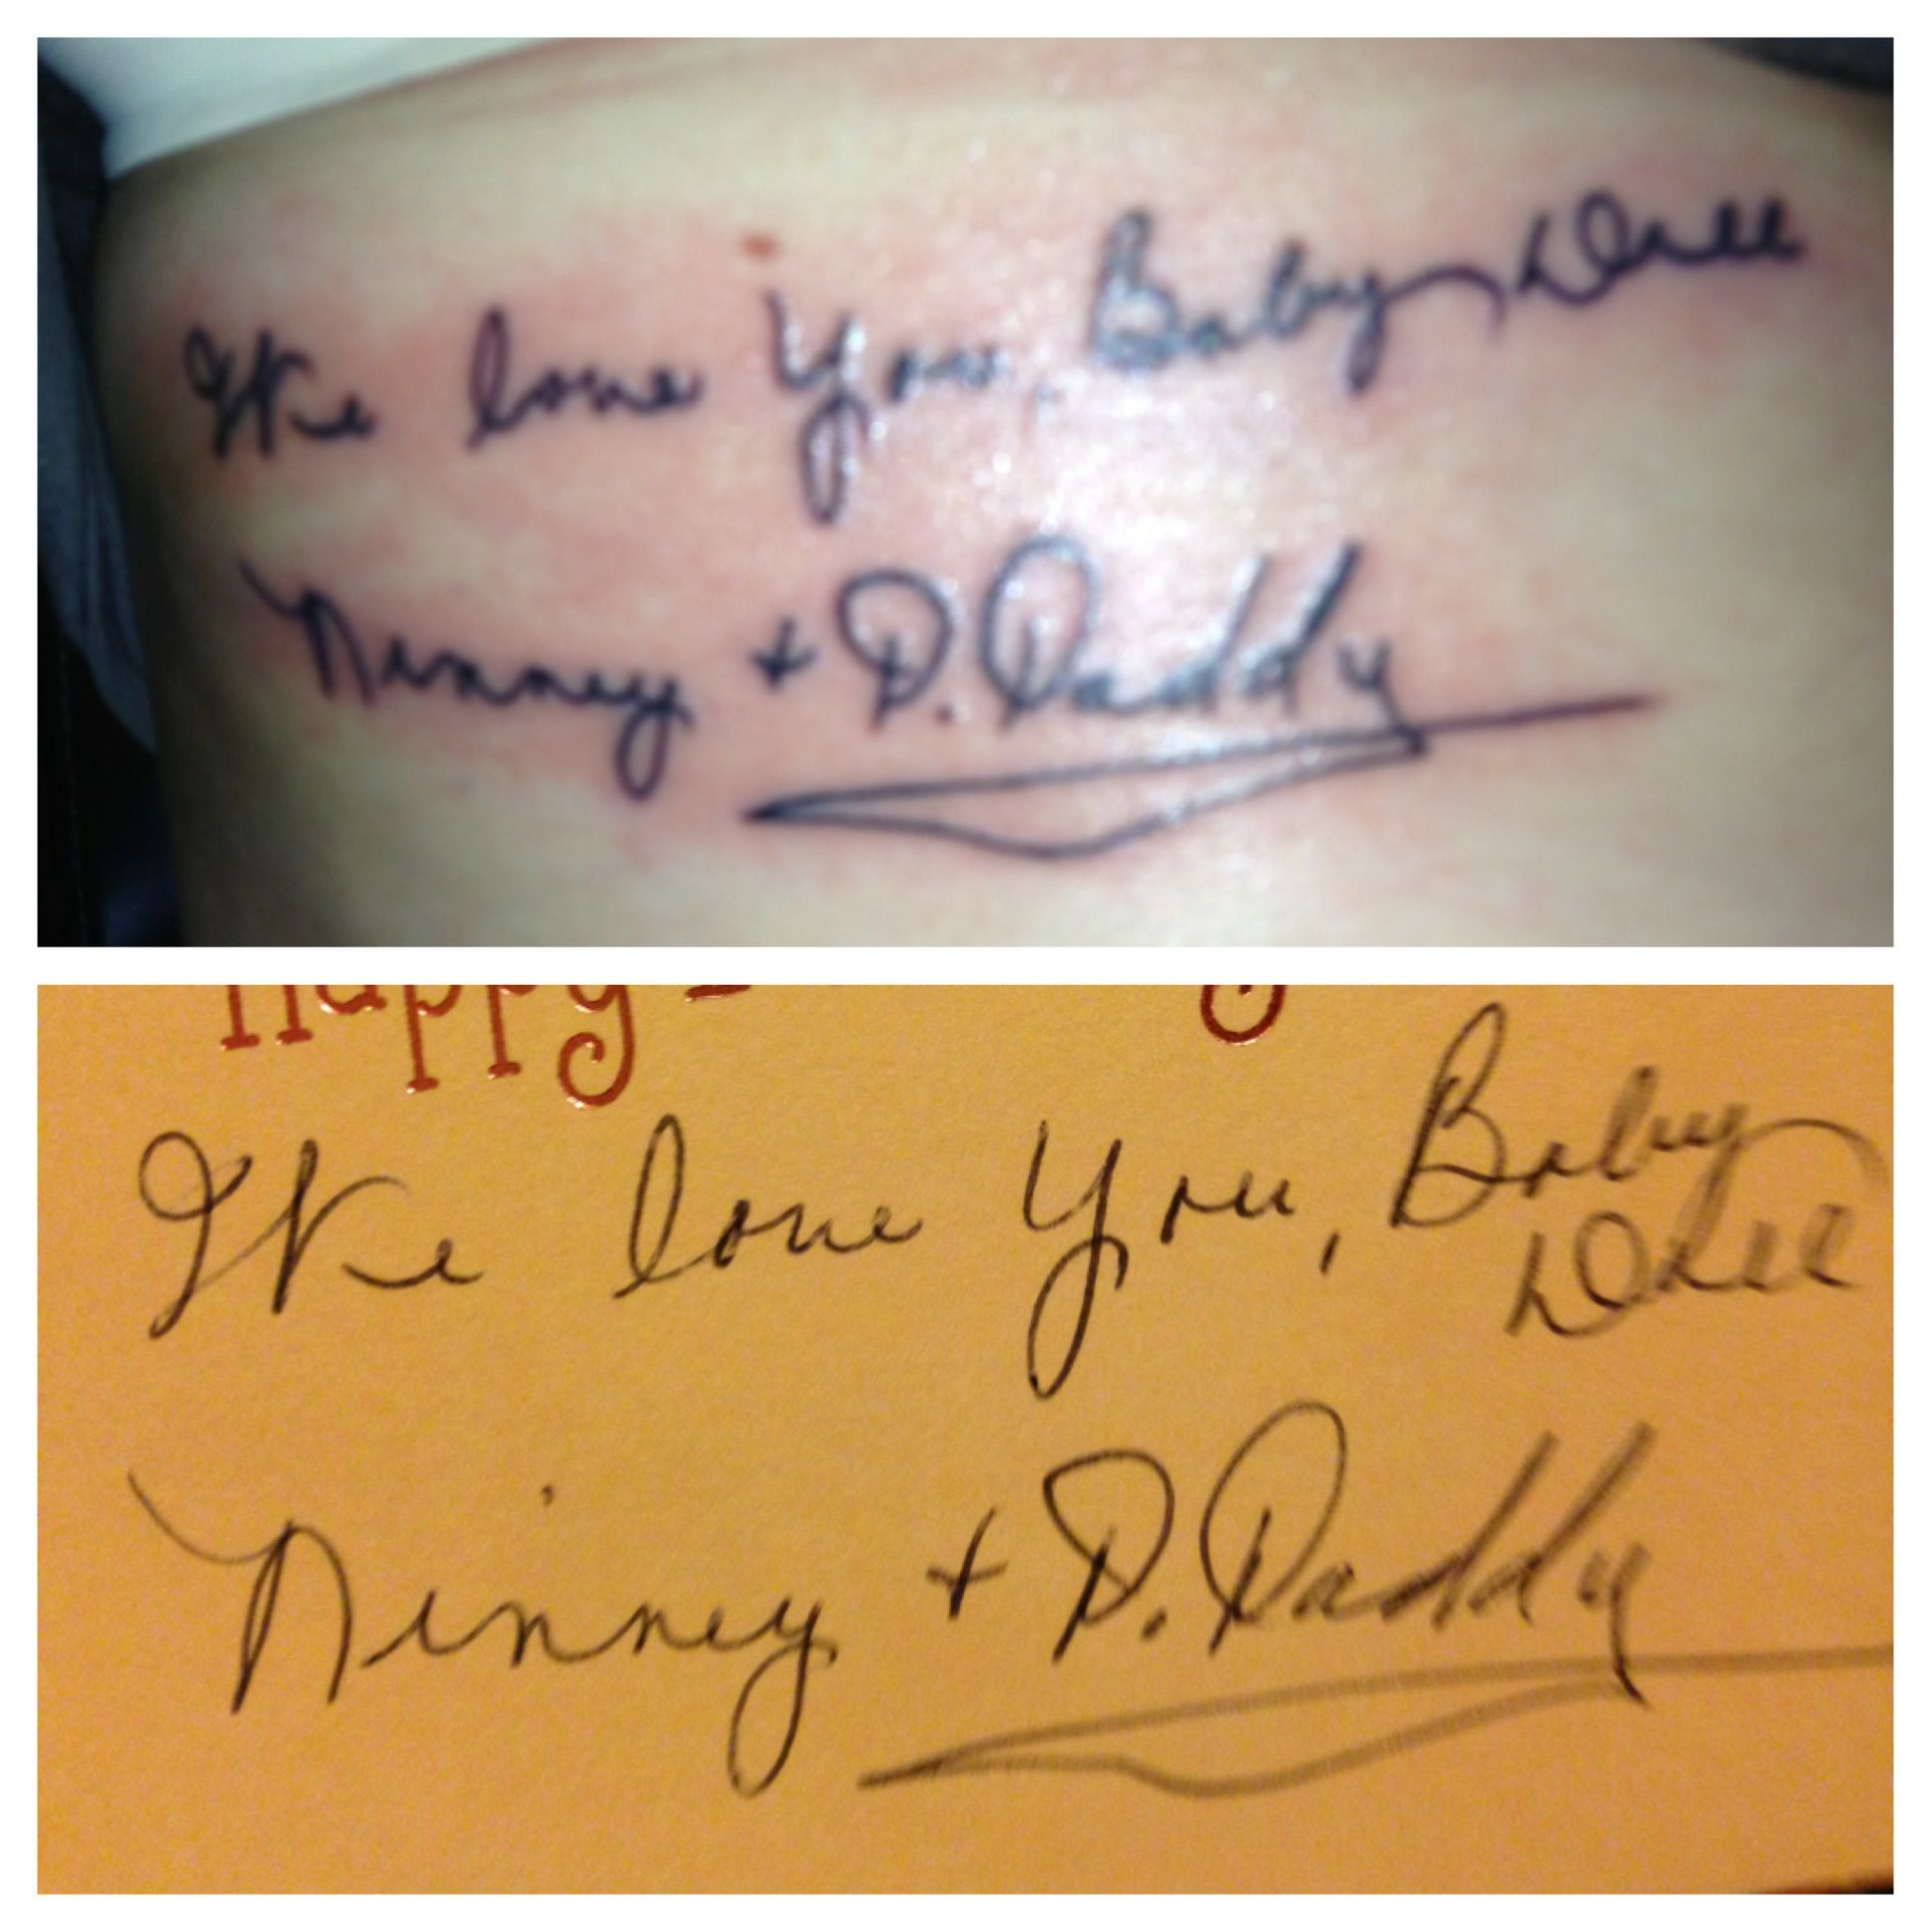 My newest addition- my grandpa recently passed away and this is a birthday card that he and my grandma signed. This is literally the most significant tattoo I will ever have.